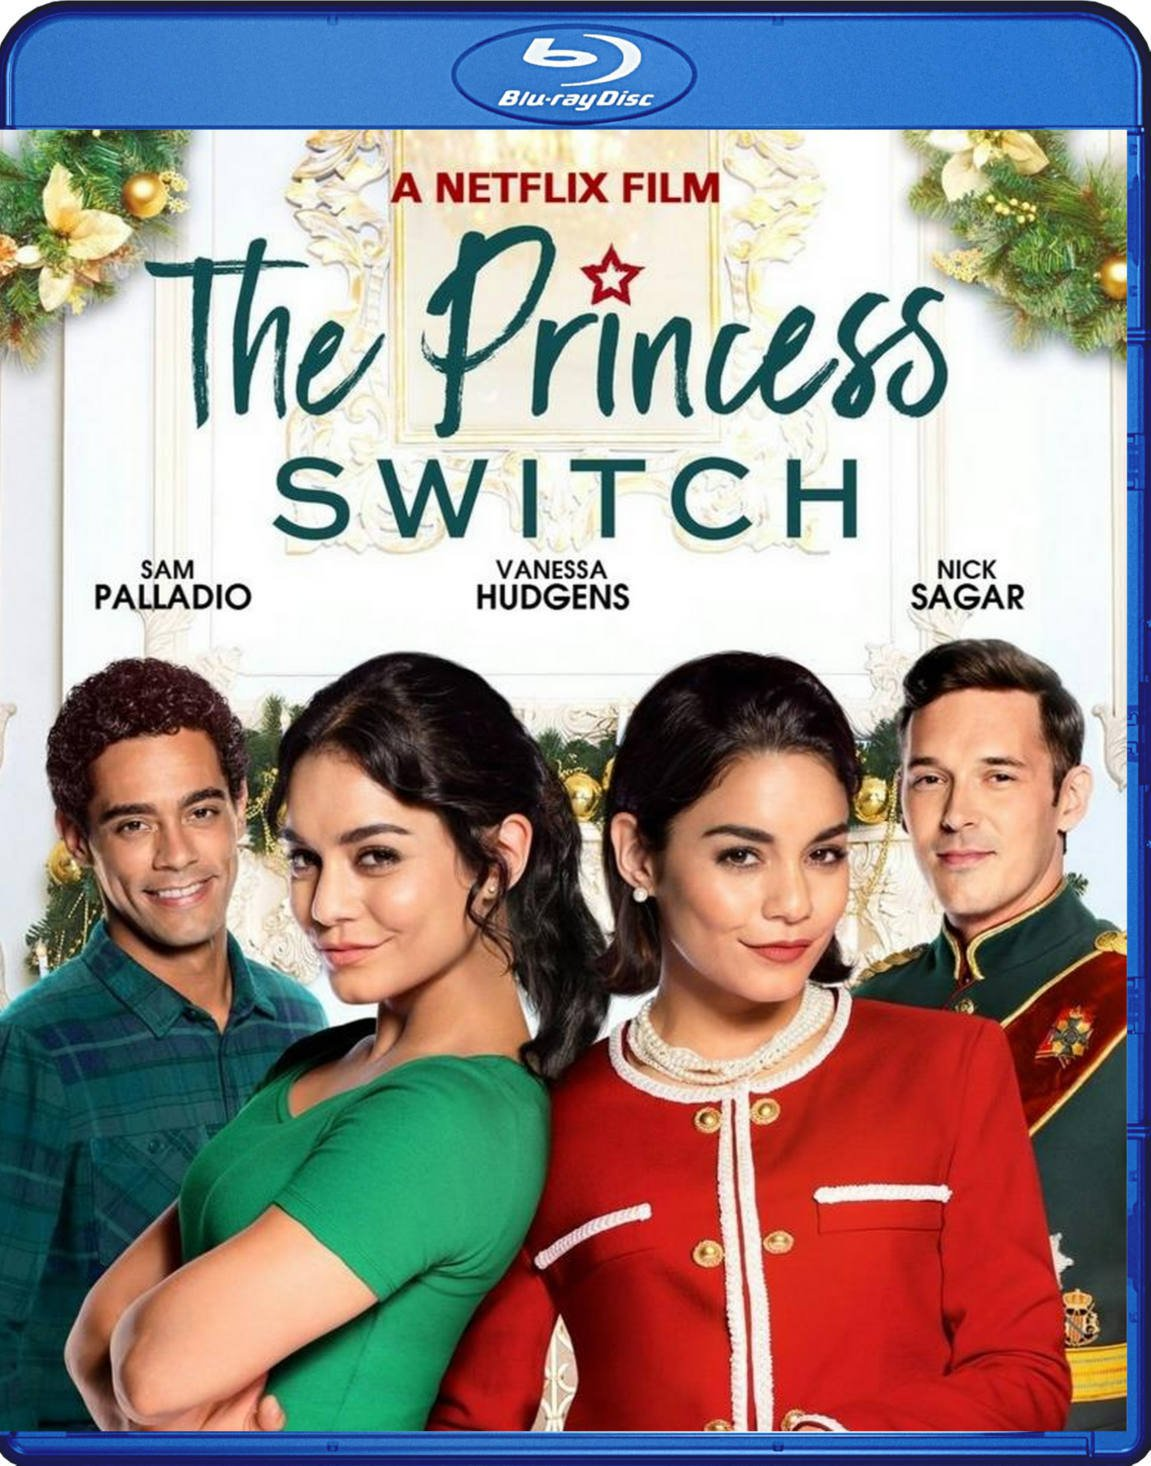 The Princess Switch Blu-Ray Netflix